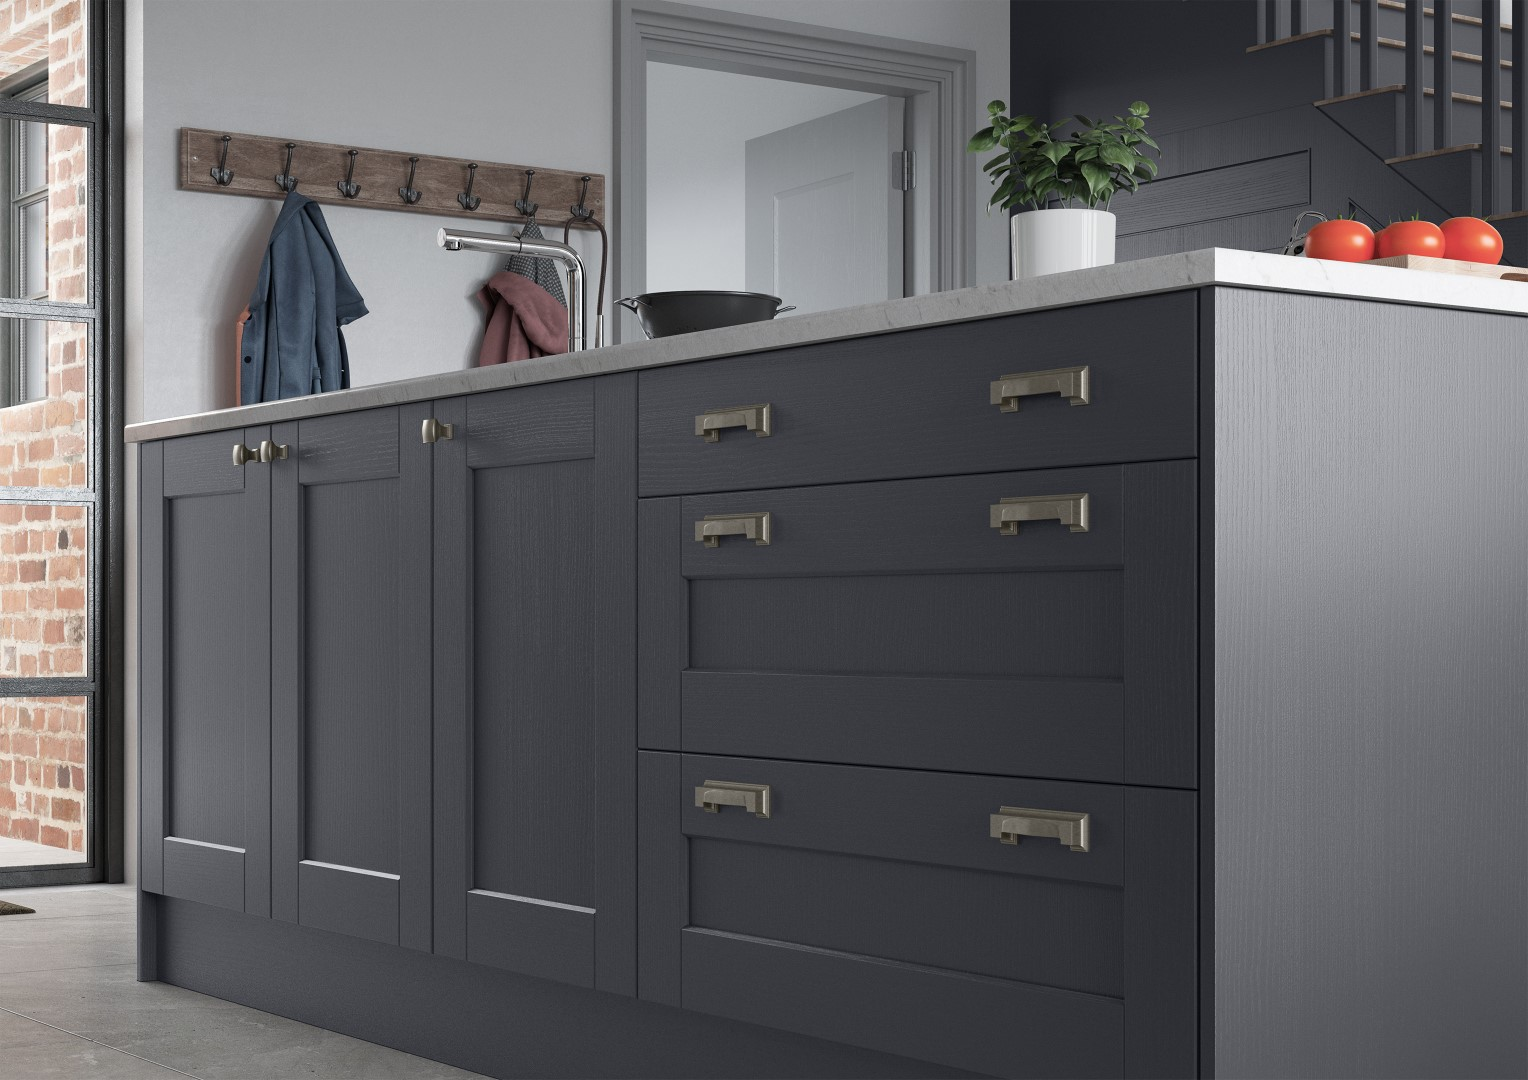 Kensington Indigo - Kitchen Design - Alan Kelly Kitchens - Waterford - 6